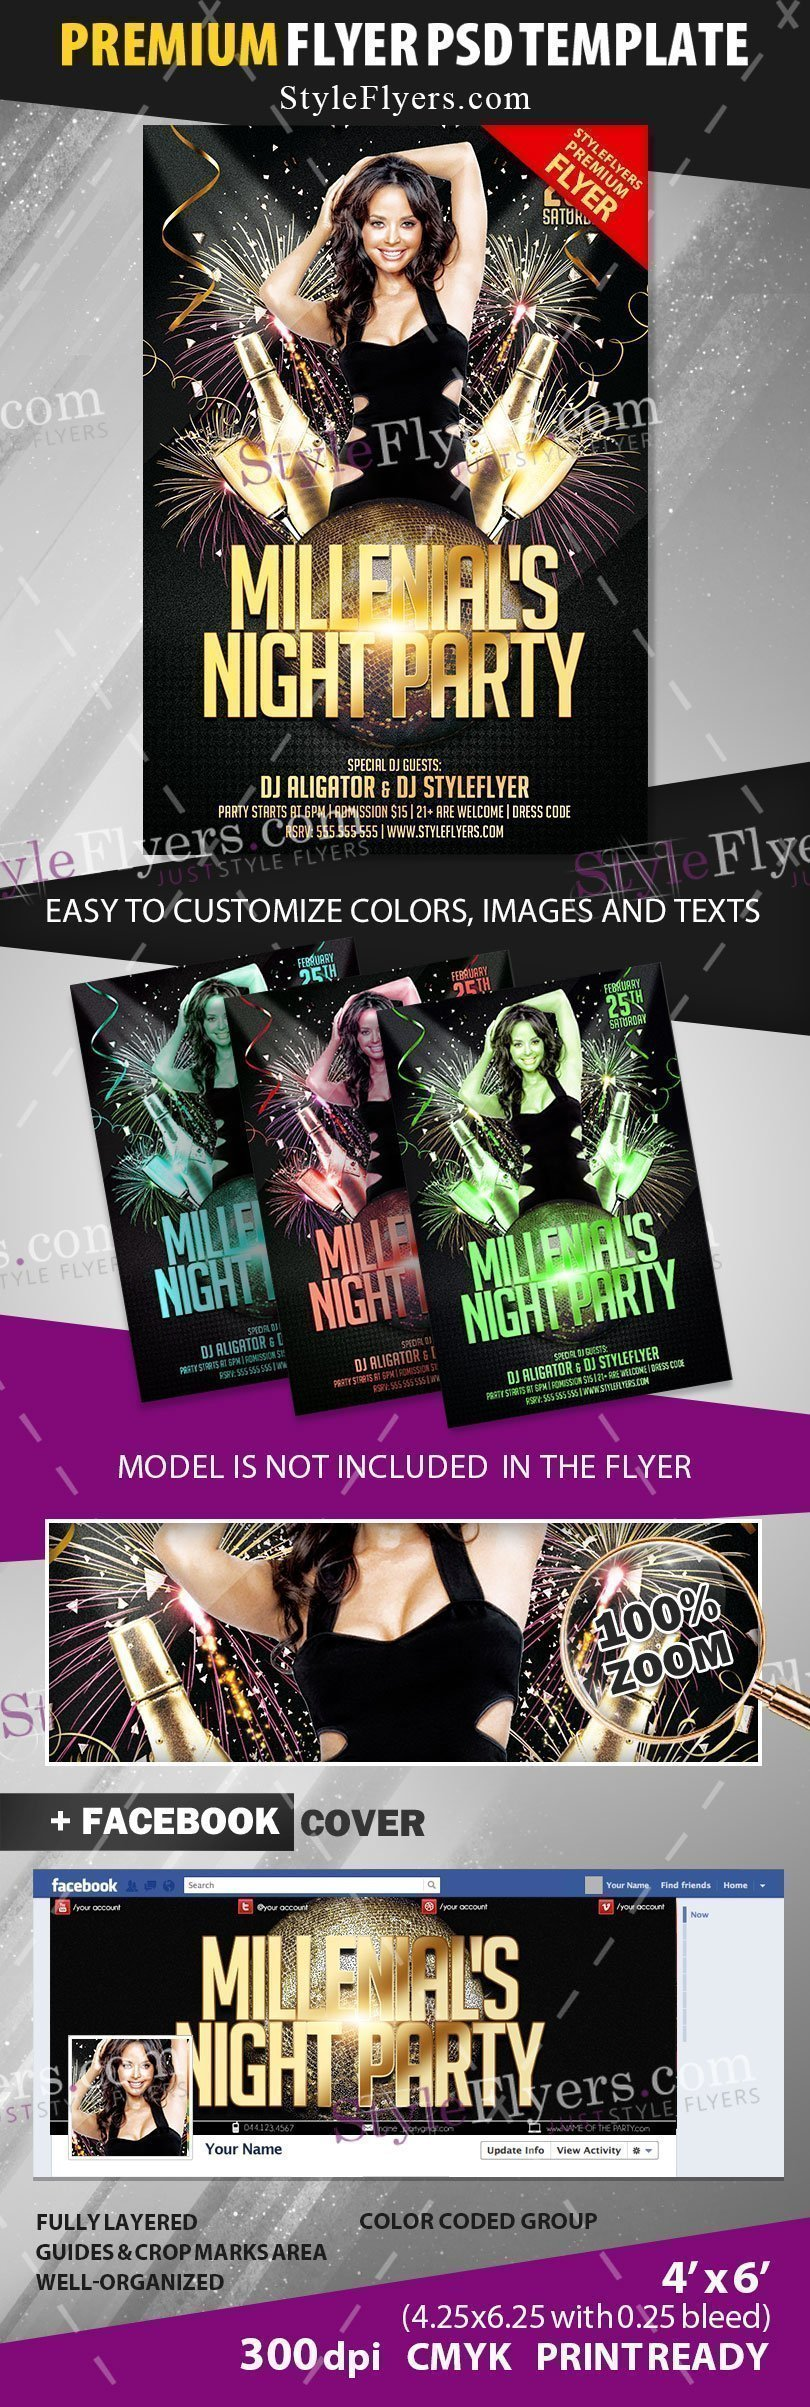 preview_millenials_night_party_premium_template